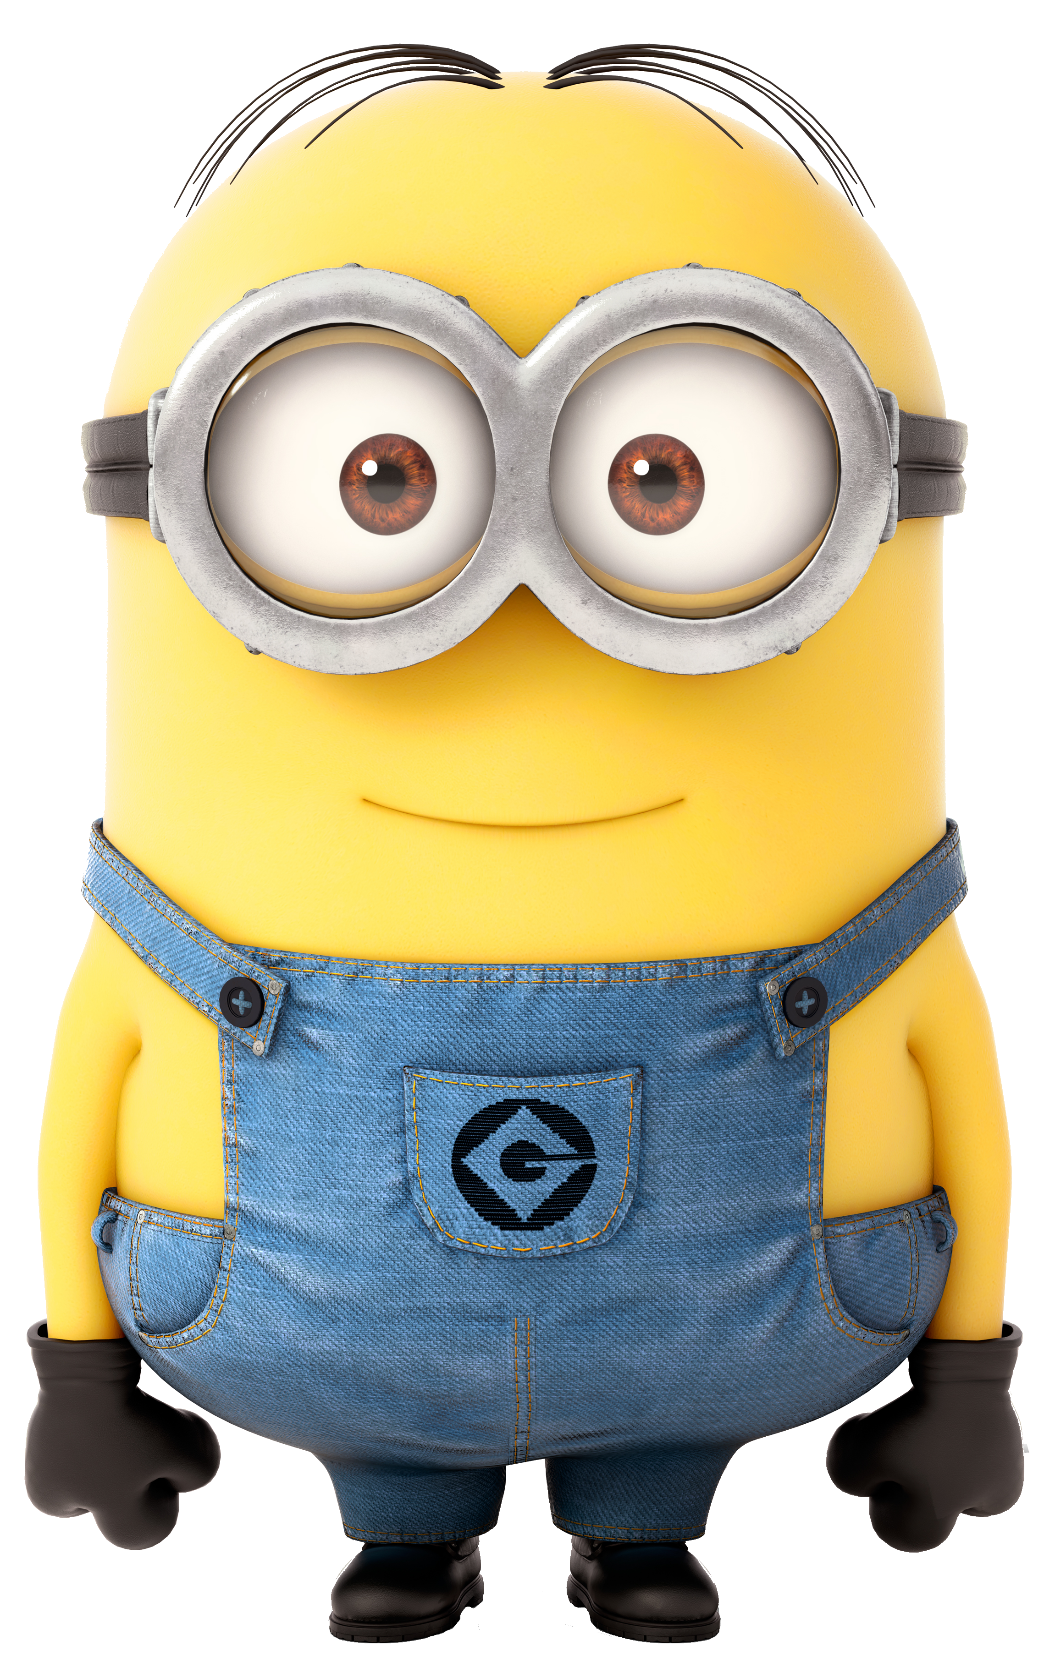 Sad minion png. Minions images free download